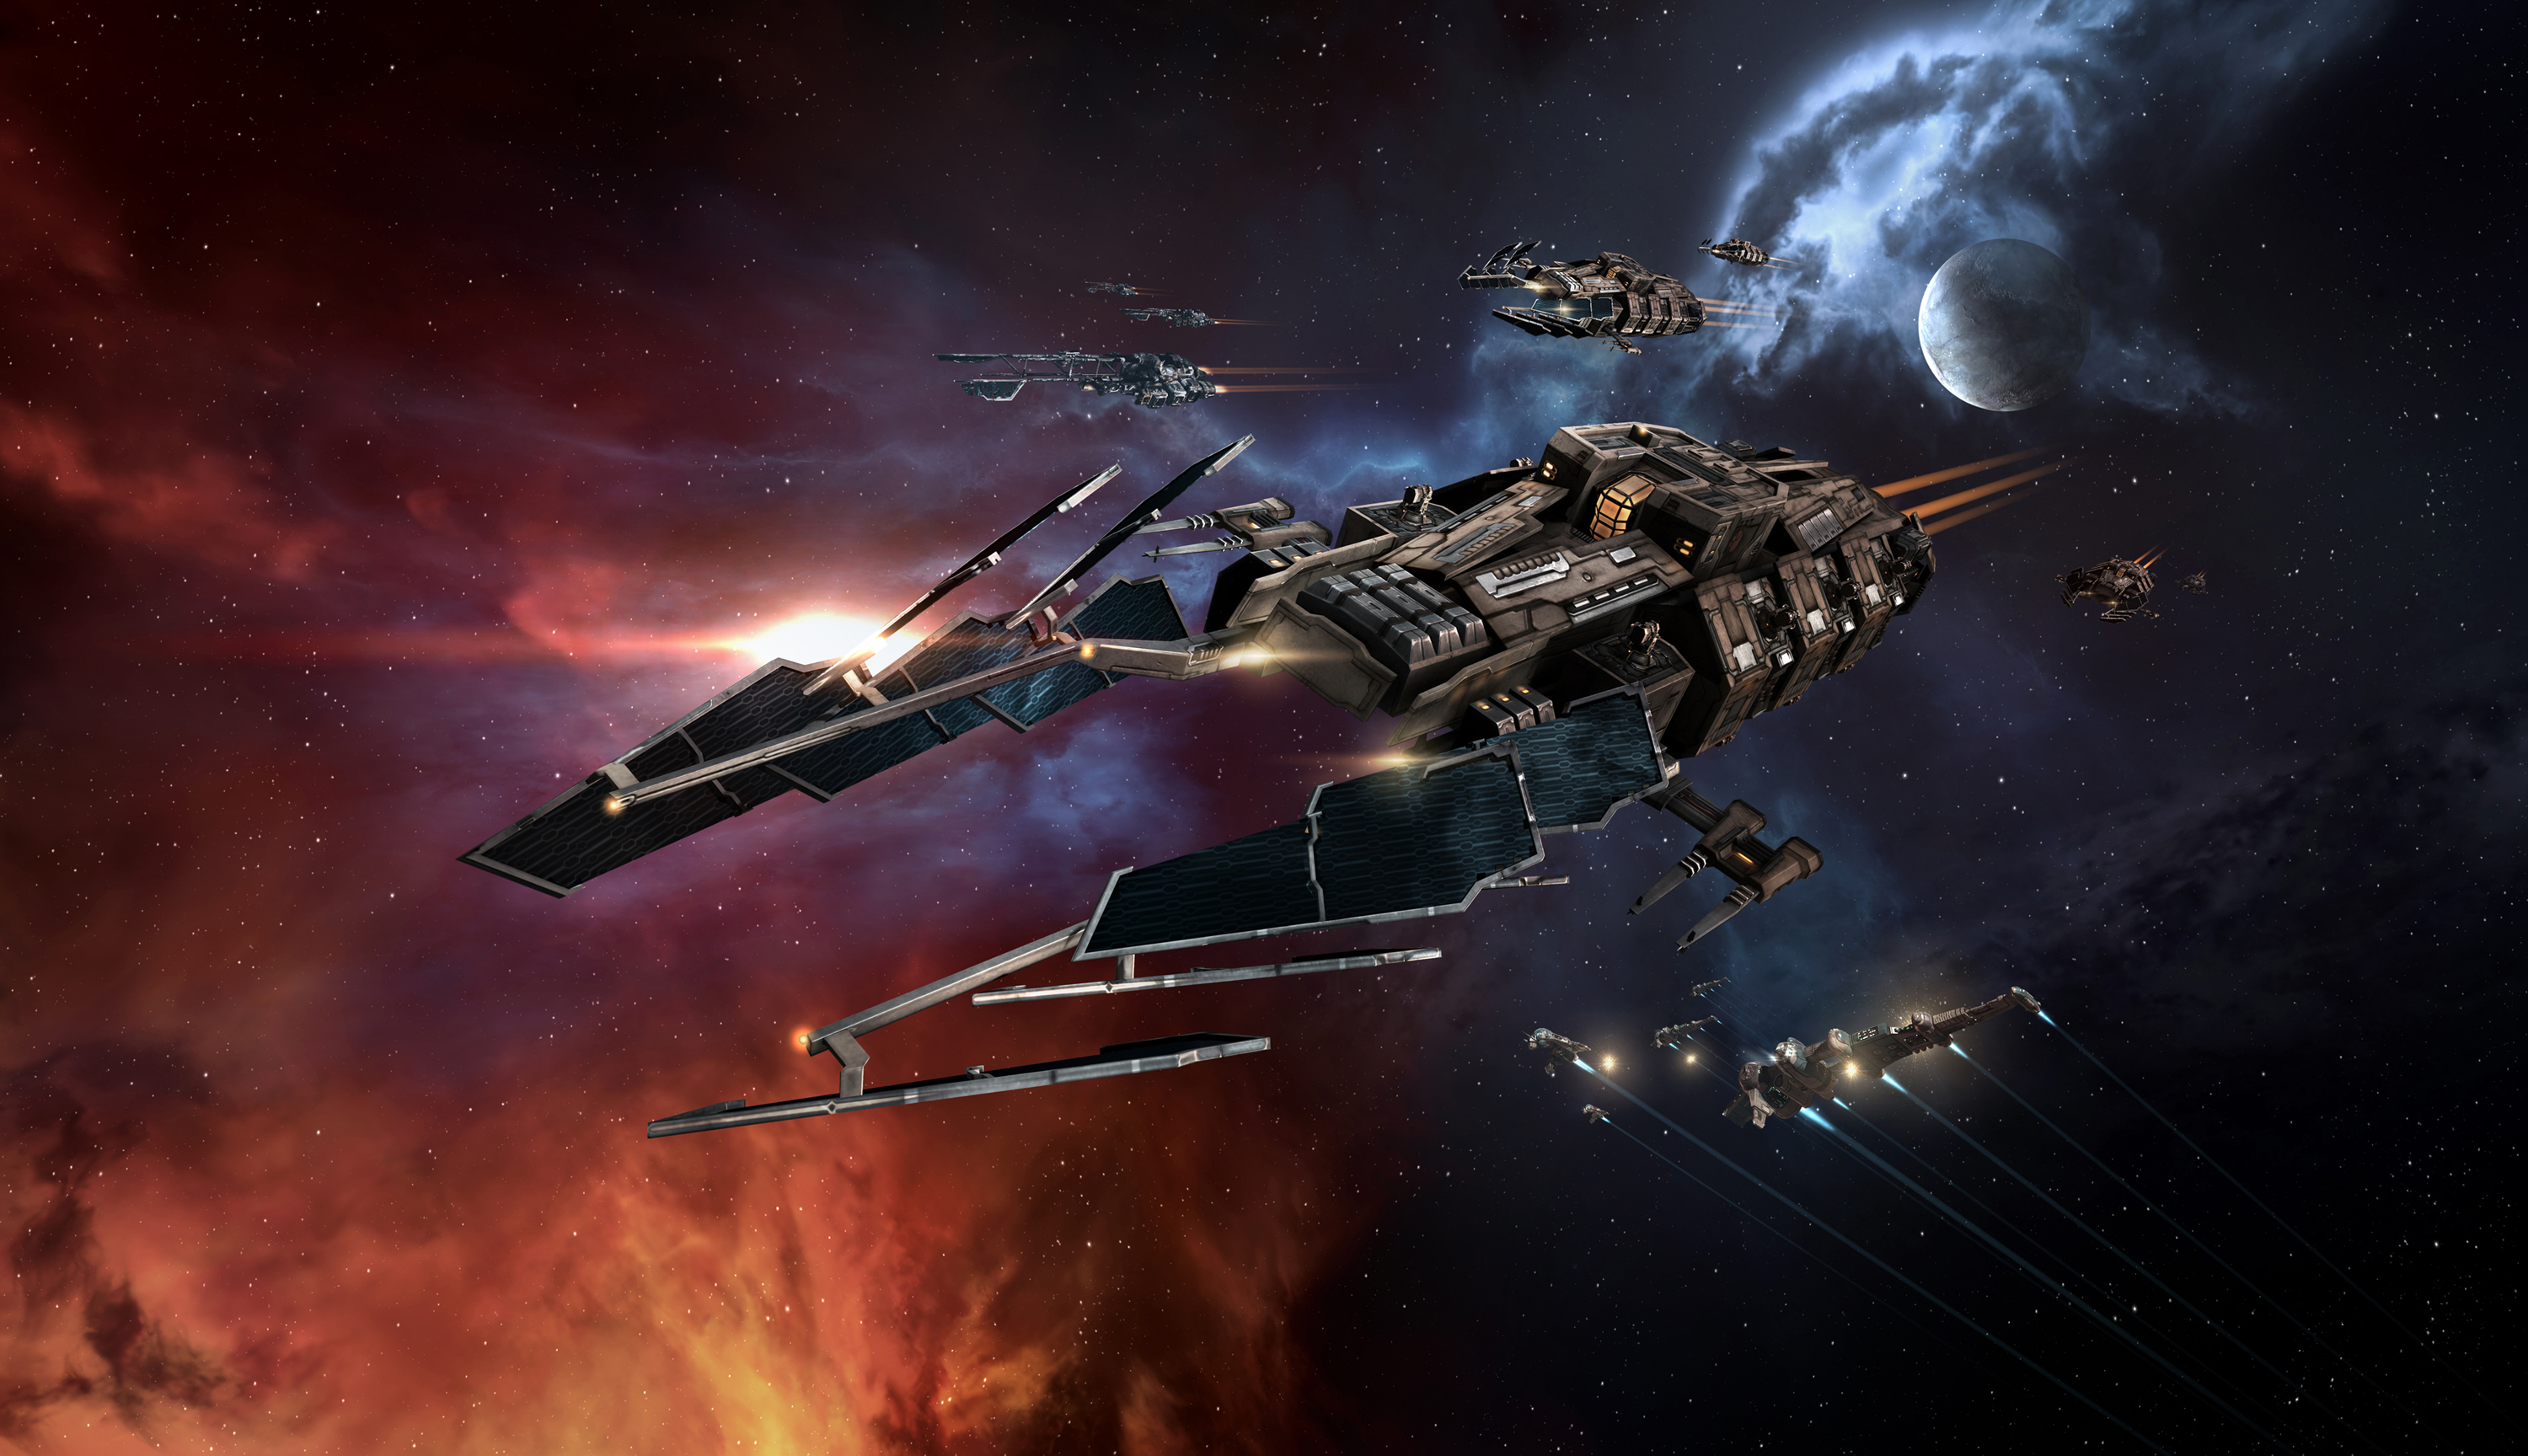 9. EVE Online. Superbly designed, in continuous evolution and as compelling as a great sci-fi saga, EVE is a great example of collective strategy. It also sports a great and generous community that helped us work on the display in the galleries.